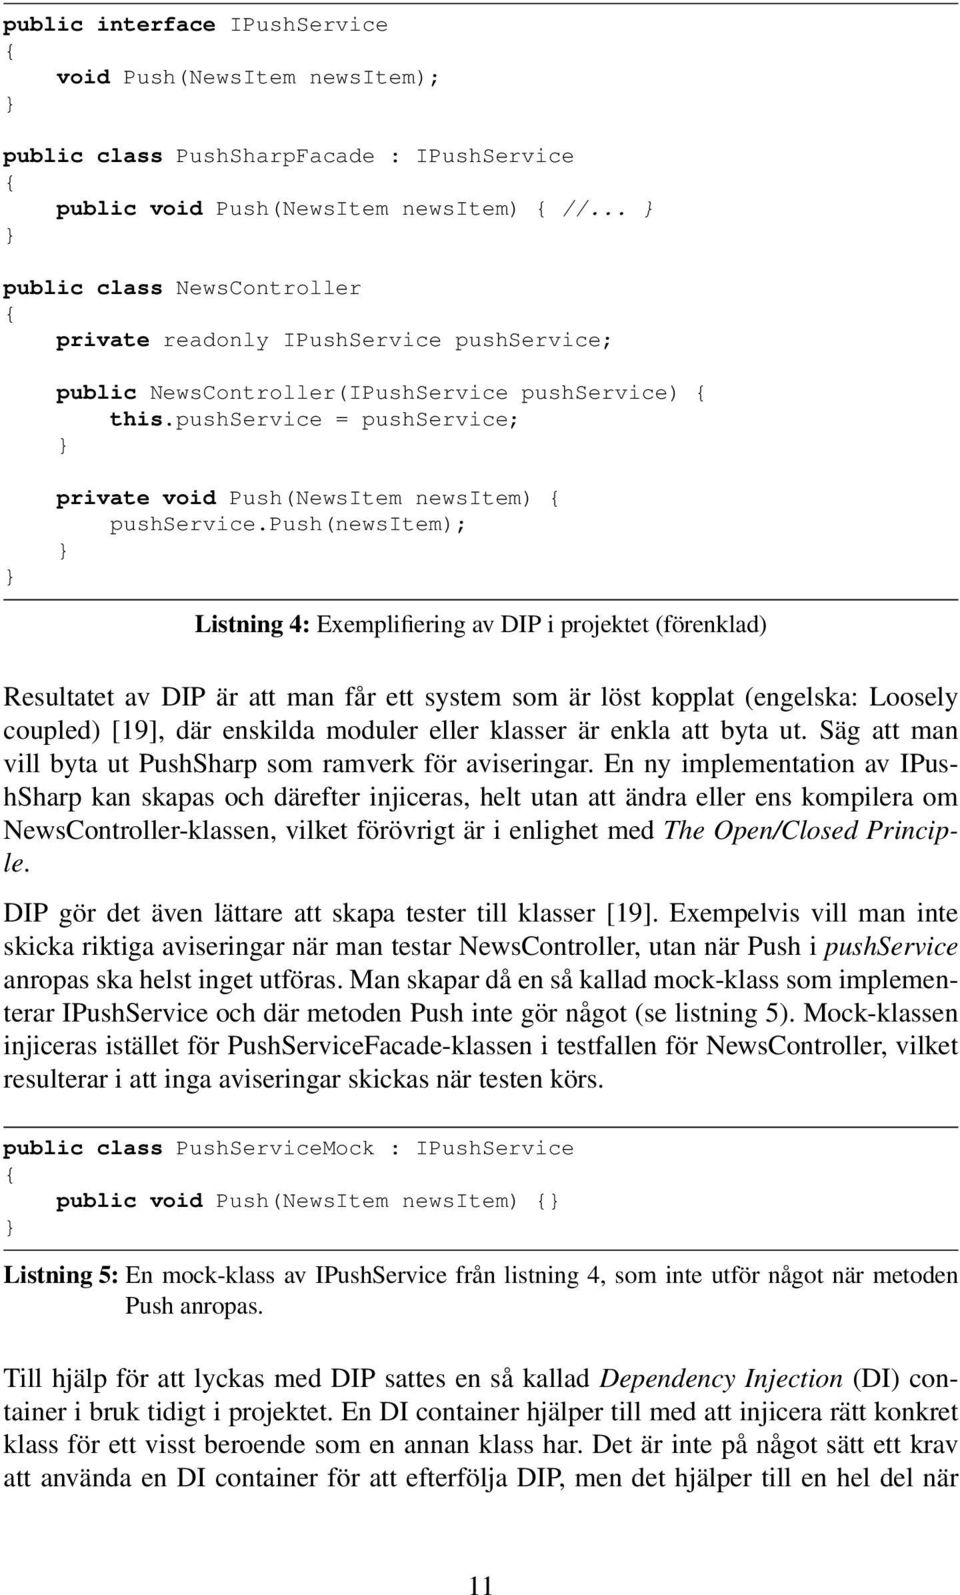 pushservice = pushservice; private void Push(NewsItem newsitem) pushservice.